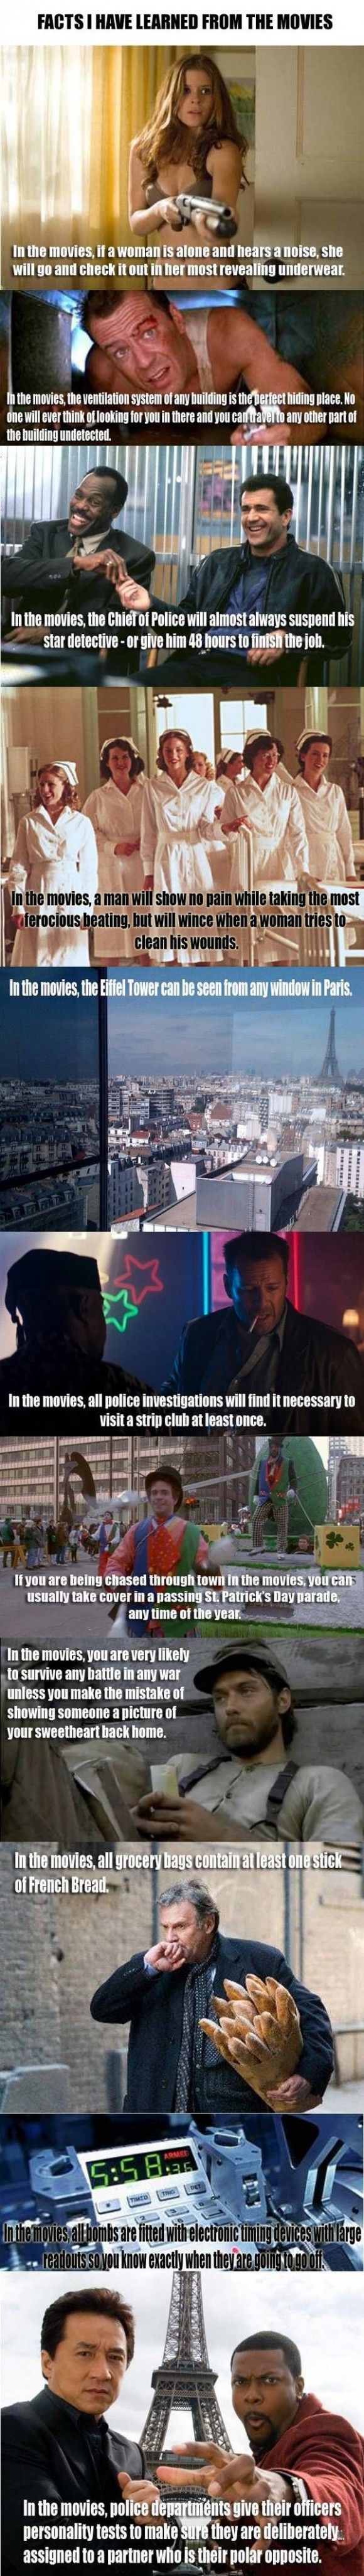 Most Predictable Hollywood Movie Facts